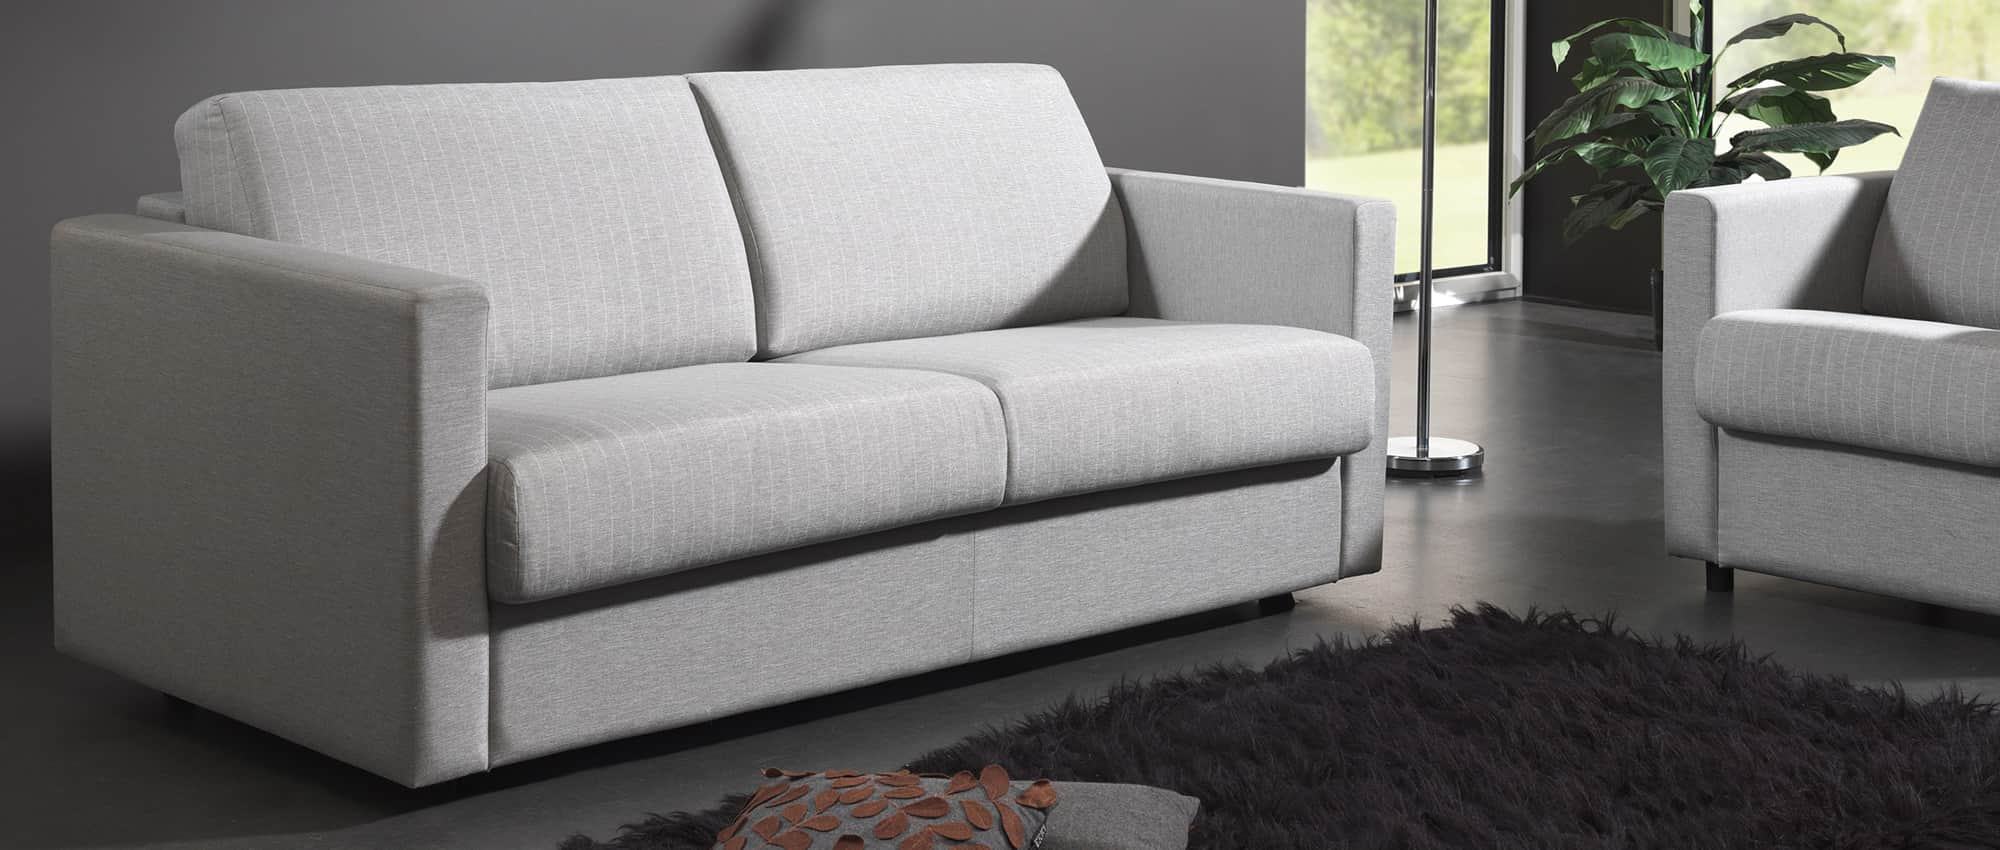 schlafsofa f r jeden tag noah slim weiches schlafsofa f r jeden tag arredaclick schlafsofa new. Black Bedroom Furniture Sets. Home Design Ideas